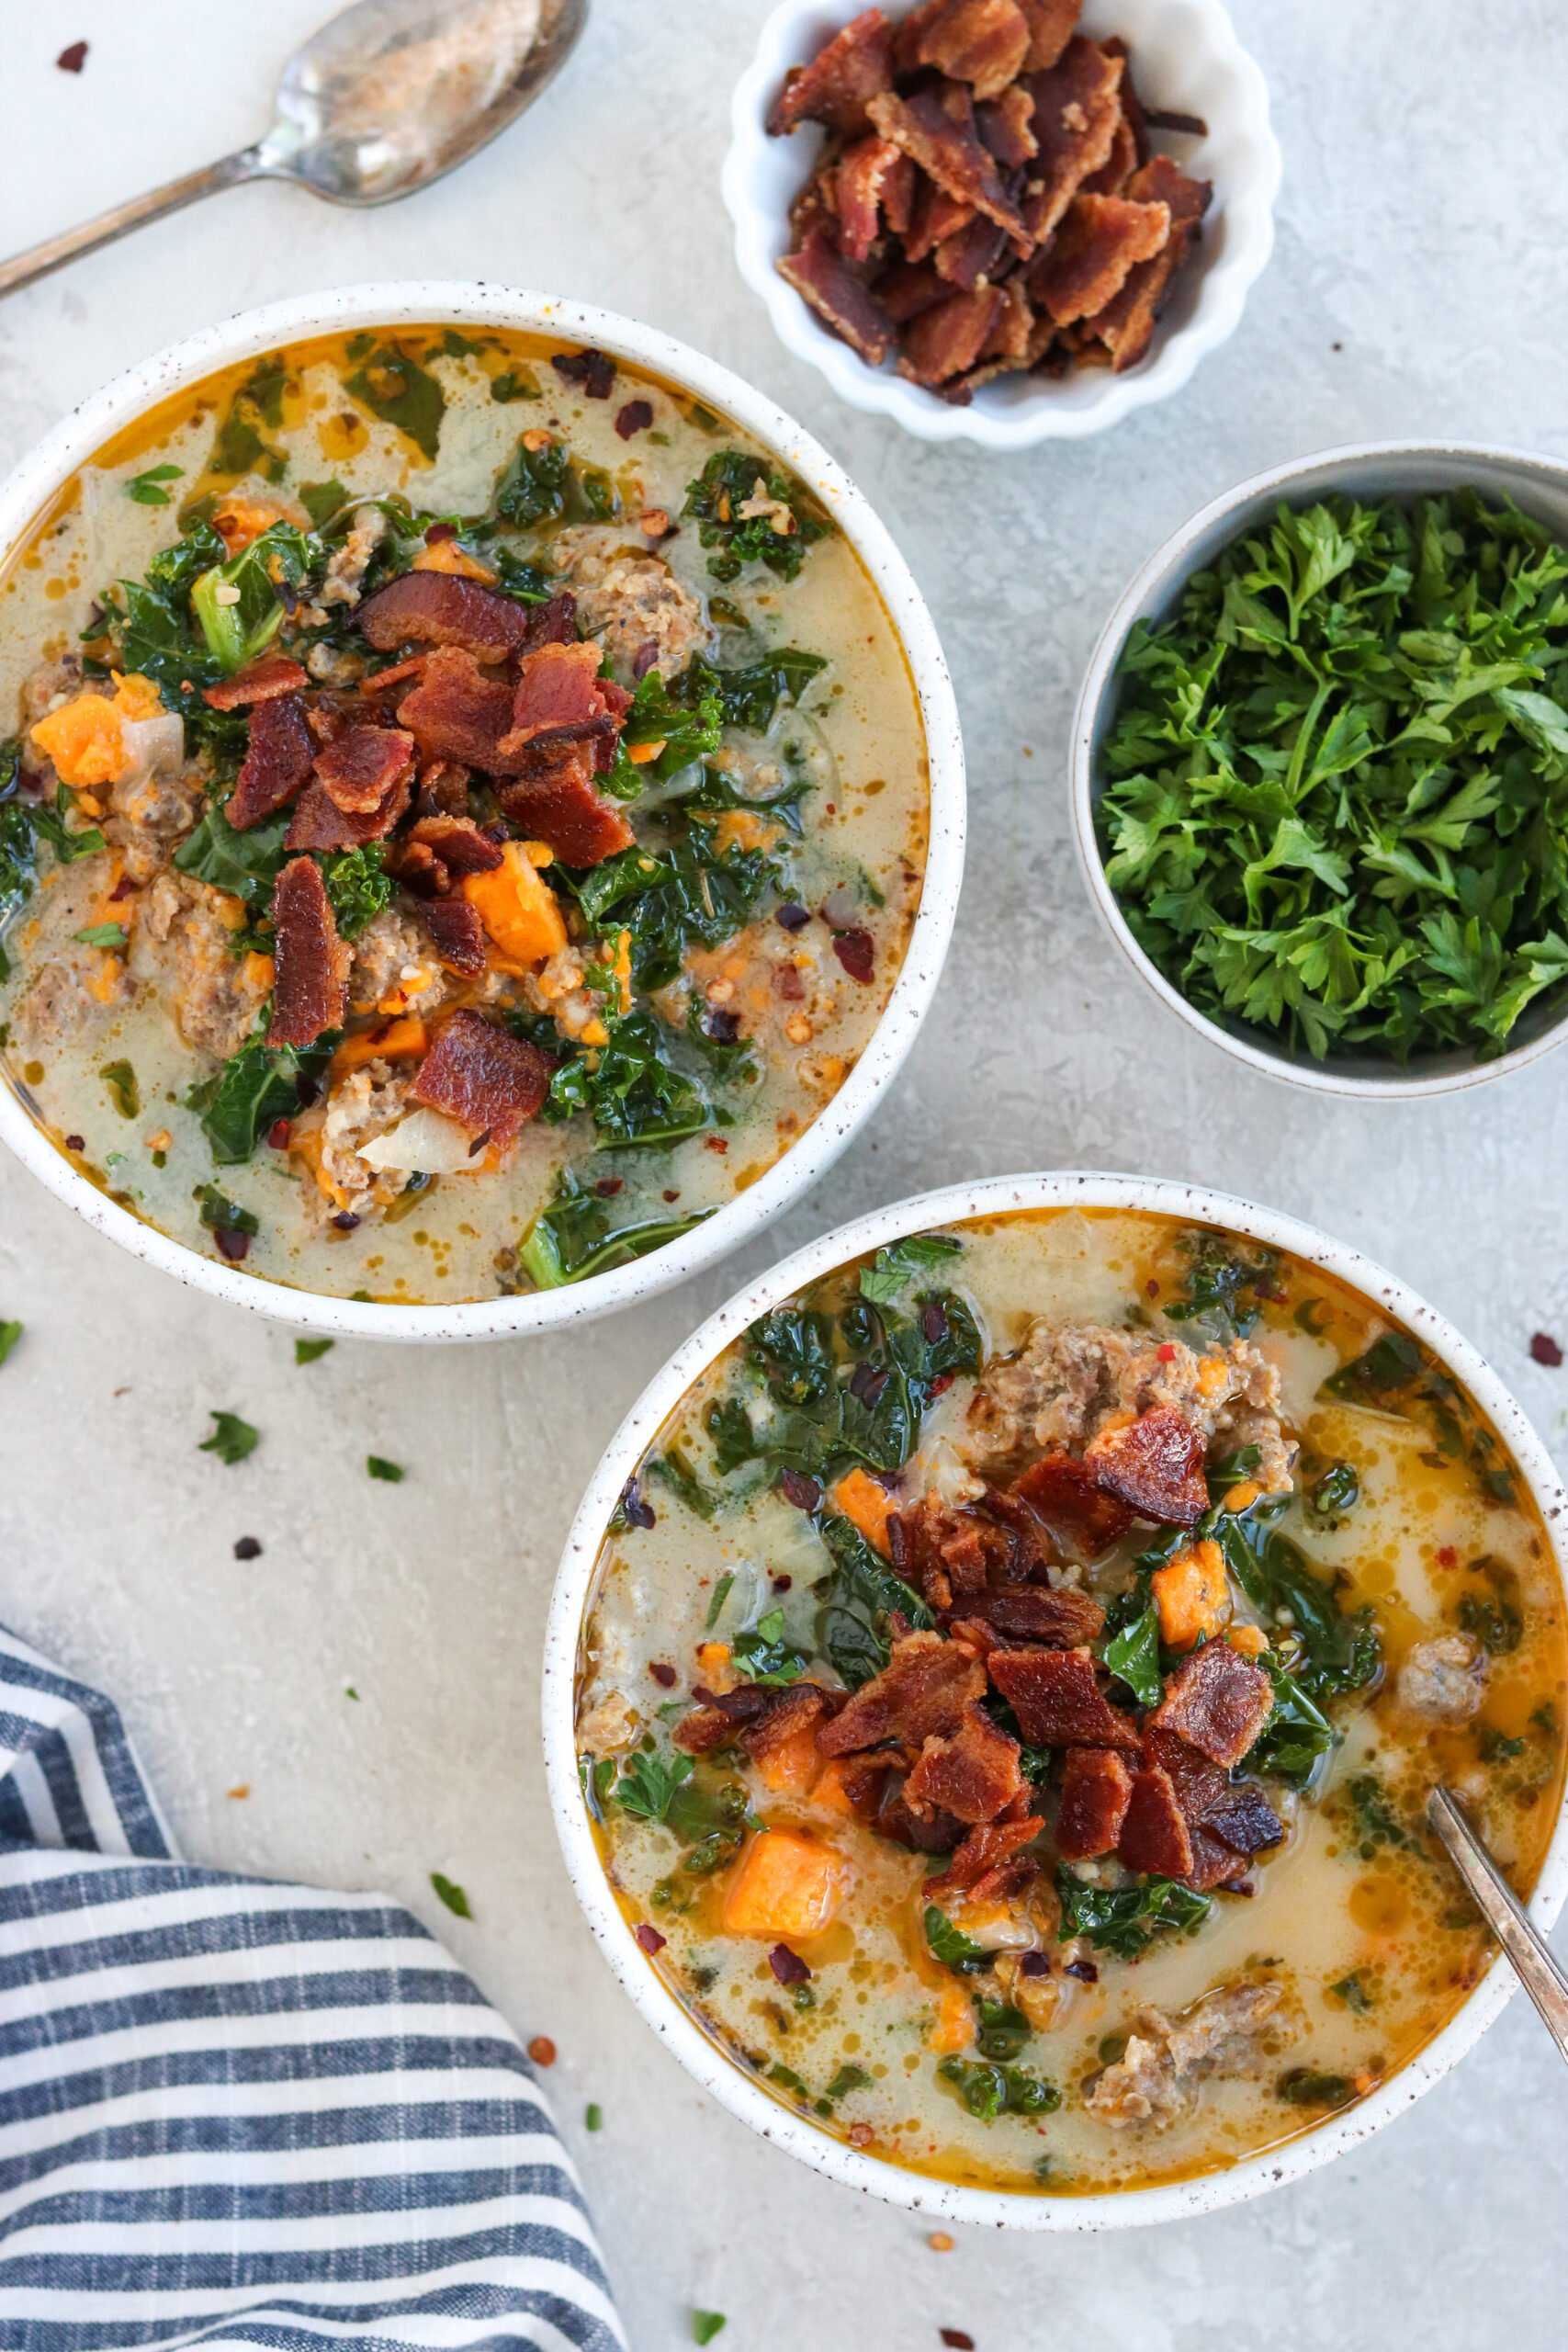 2 bowls of Whole30 Zuppa Toscana